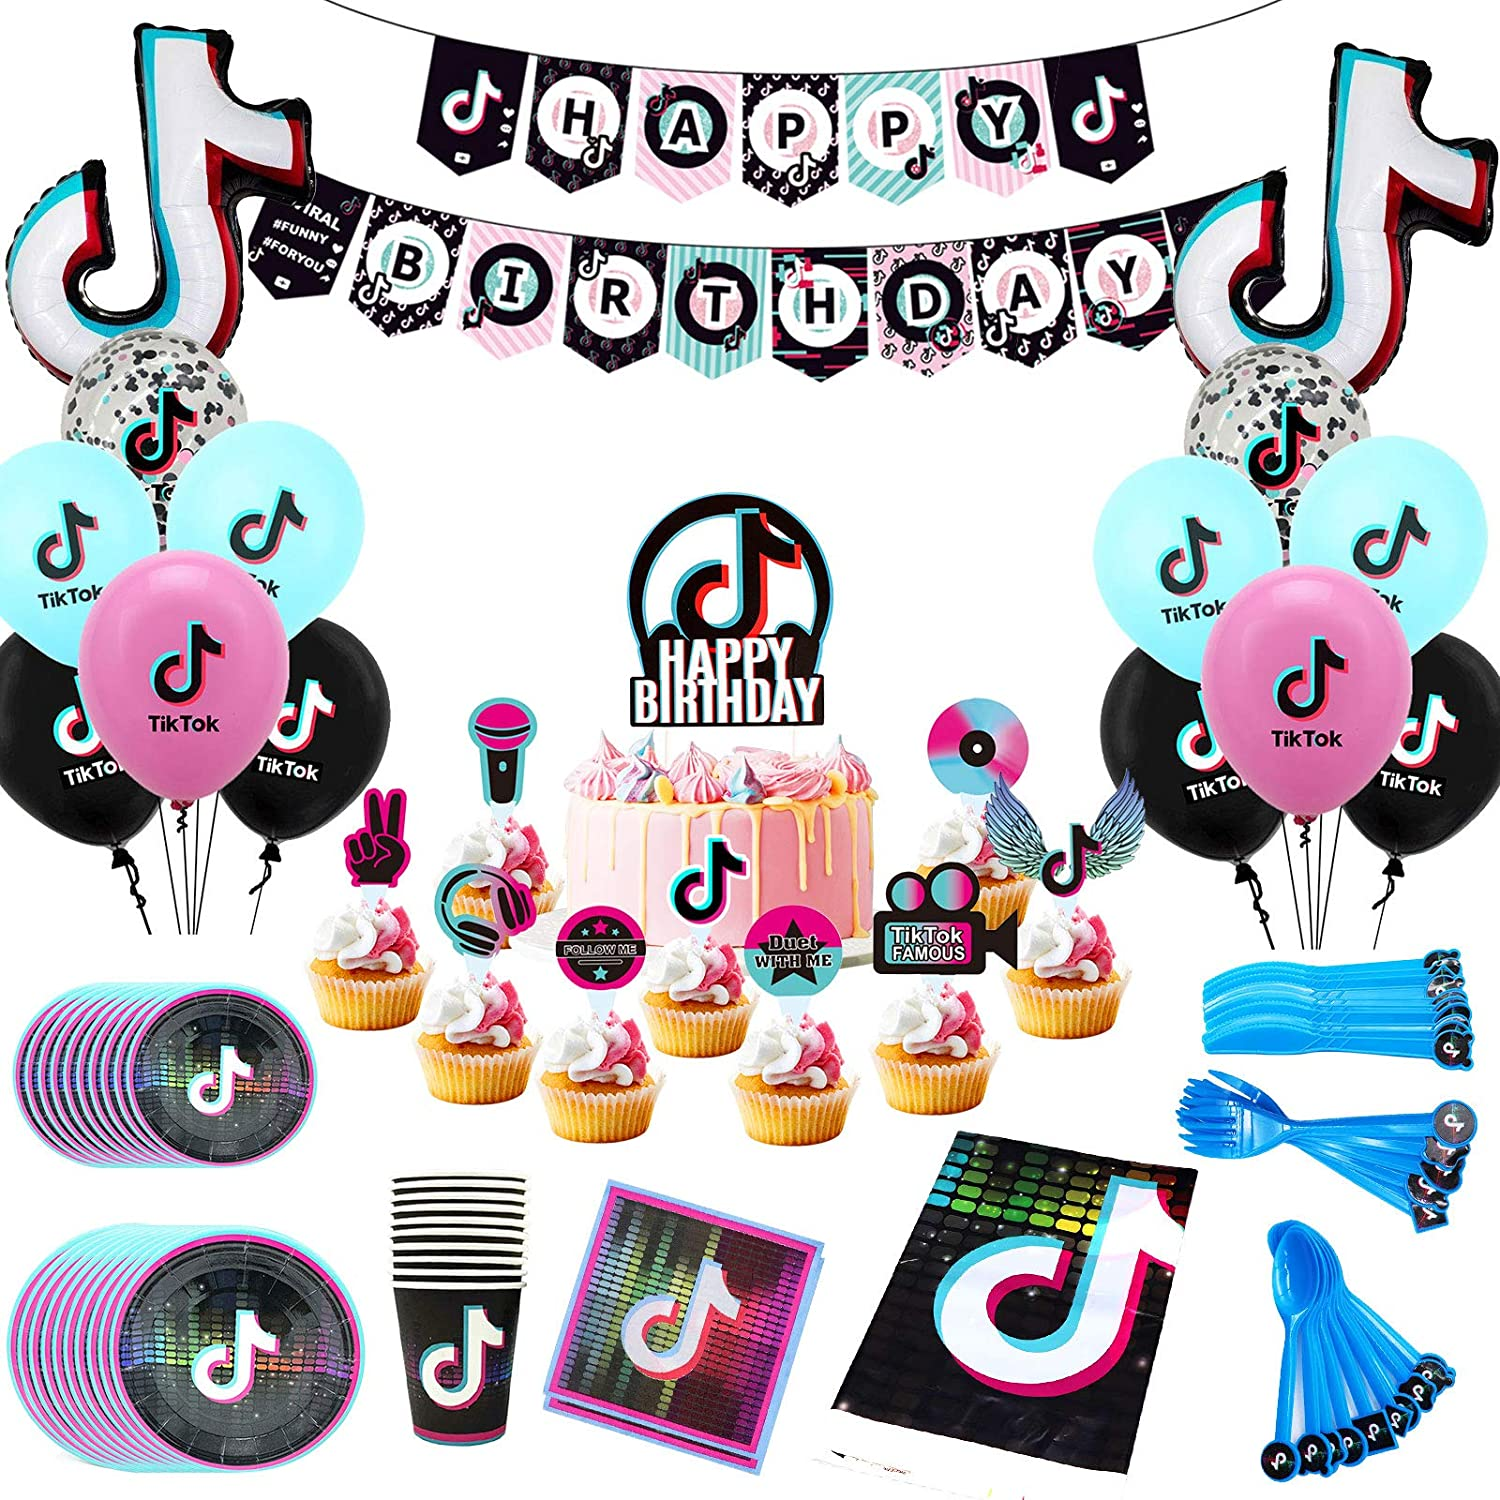 Tik Tok Birthday Party Supplies Happy Birthday Banner, Balloons, Cake Toppers Decor Plates, Forks, Napkins, Tablecover for Kids for Short Video Music Social Media Party Boys Girls Rock Roll Birthday Party Decorations 131 Pack